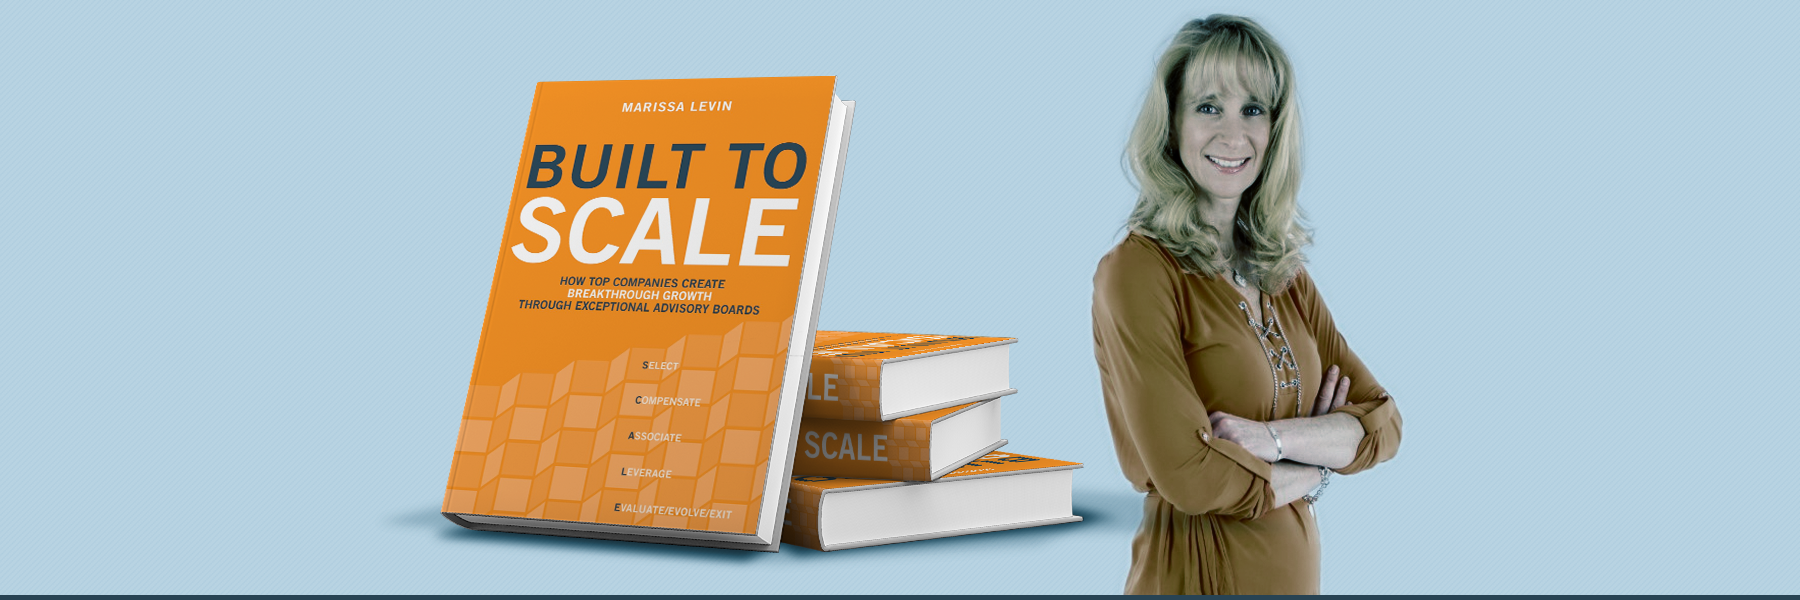 Built To Scale Cover 1